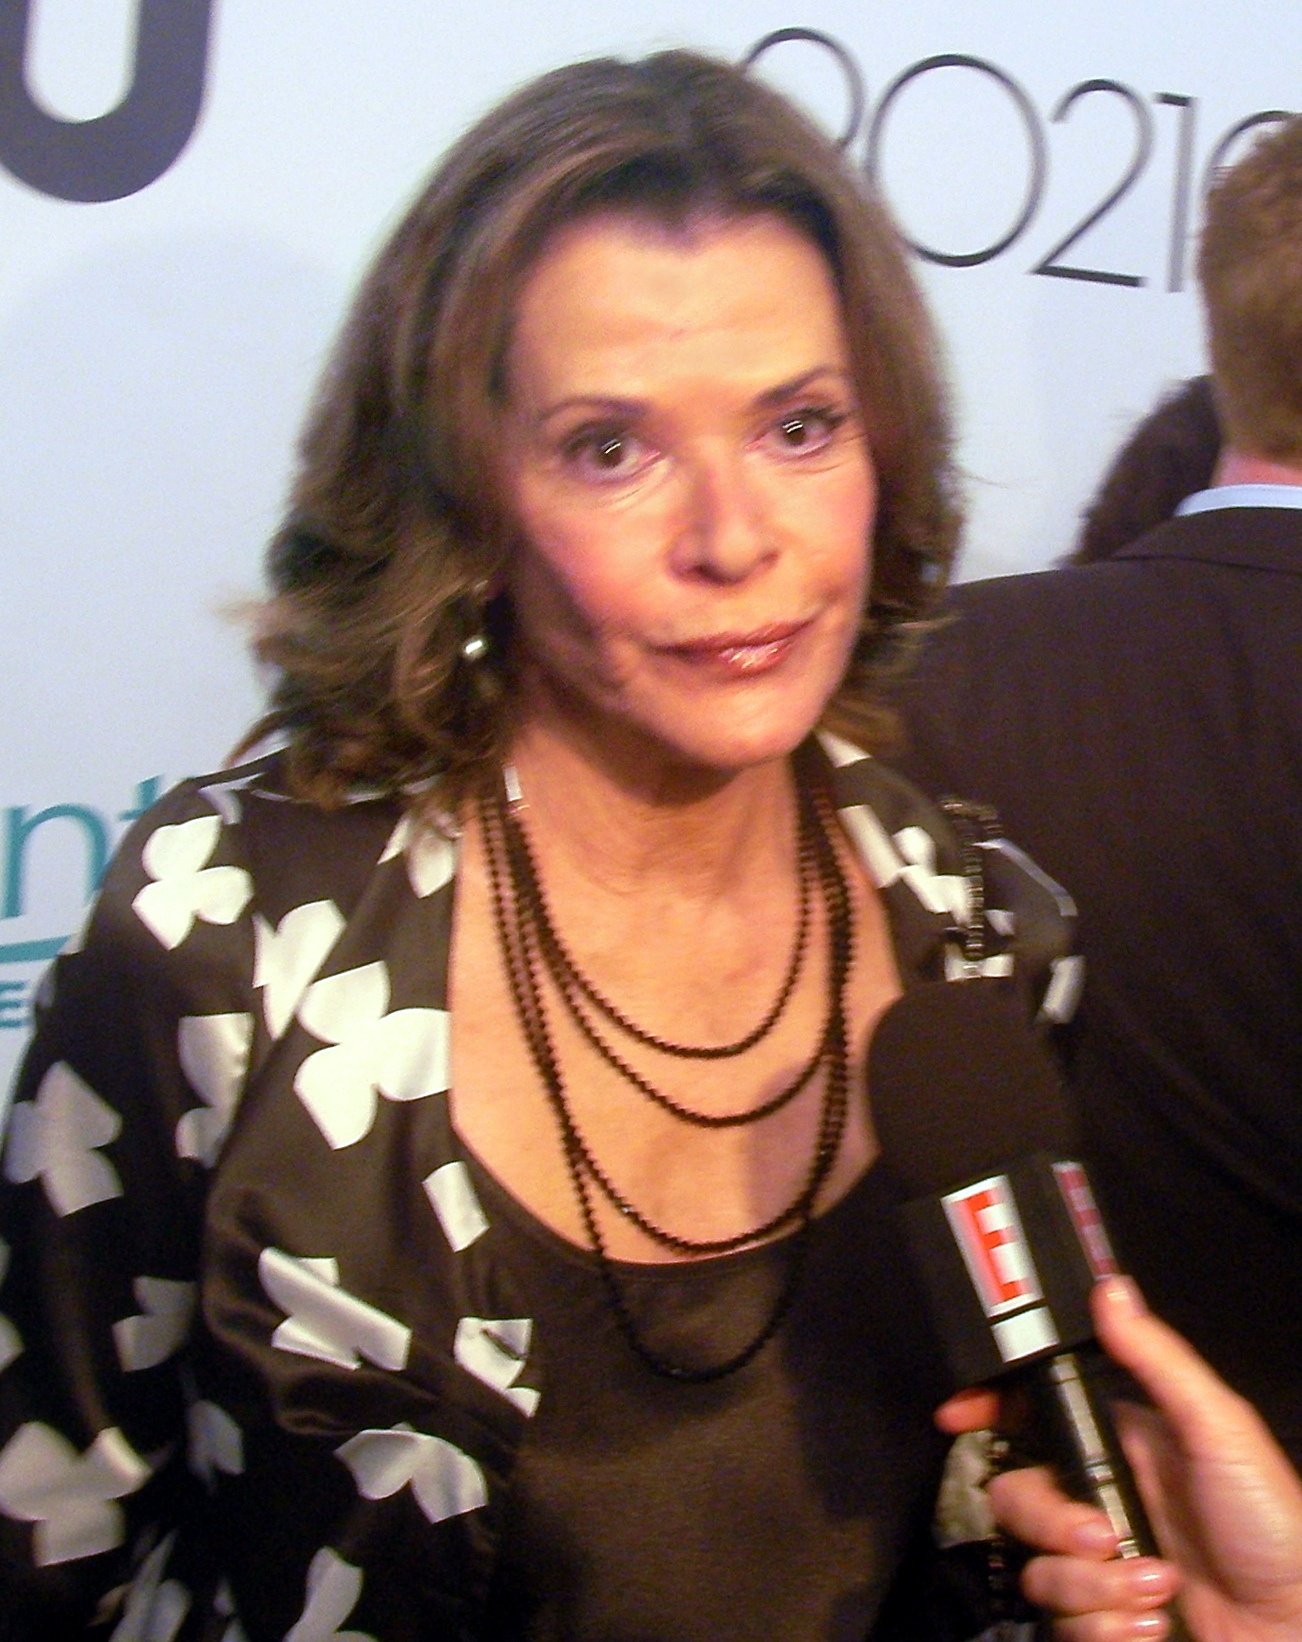 The 77-year old daughter of father David Walter and mother Esther Walter Jessica Walter in 2018 photo. Jessica Walter earned a  million dollar salary - leaving the net worth at 18 million in 2018